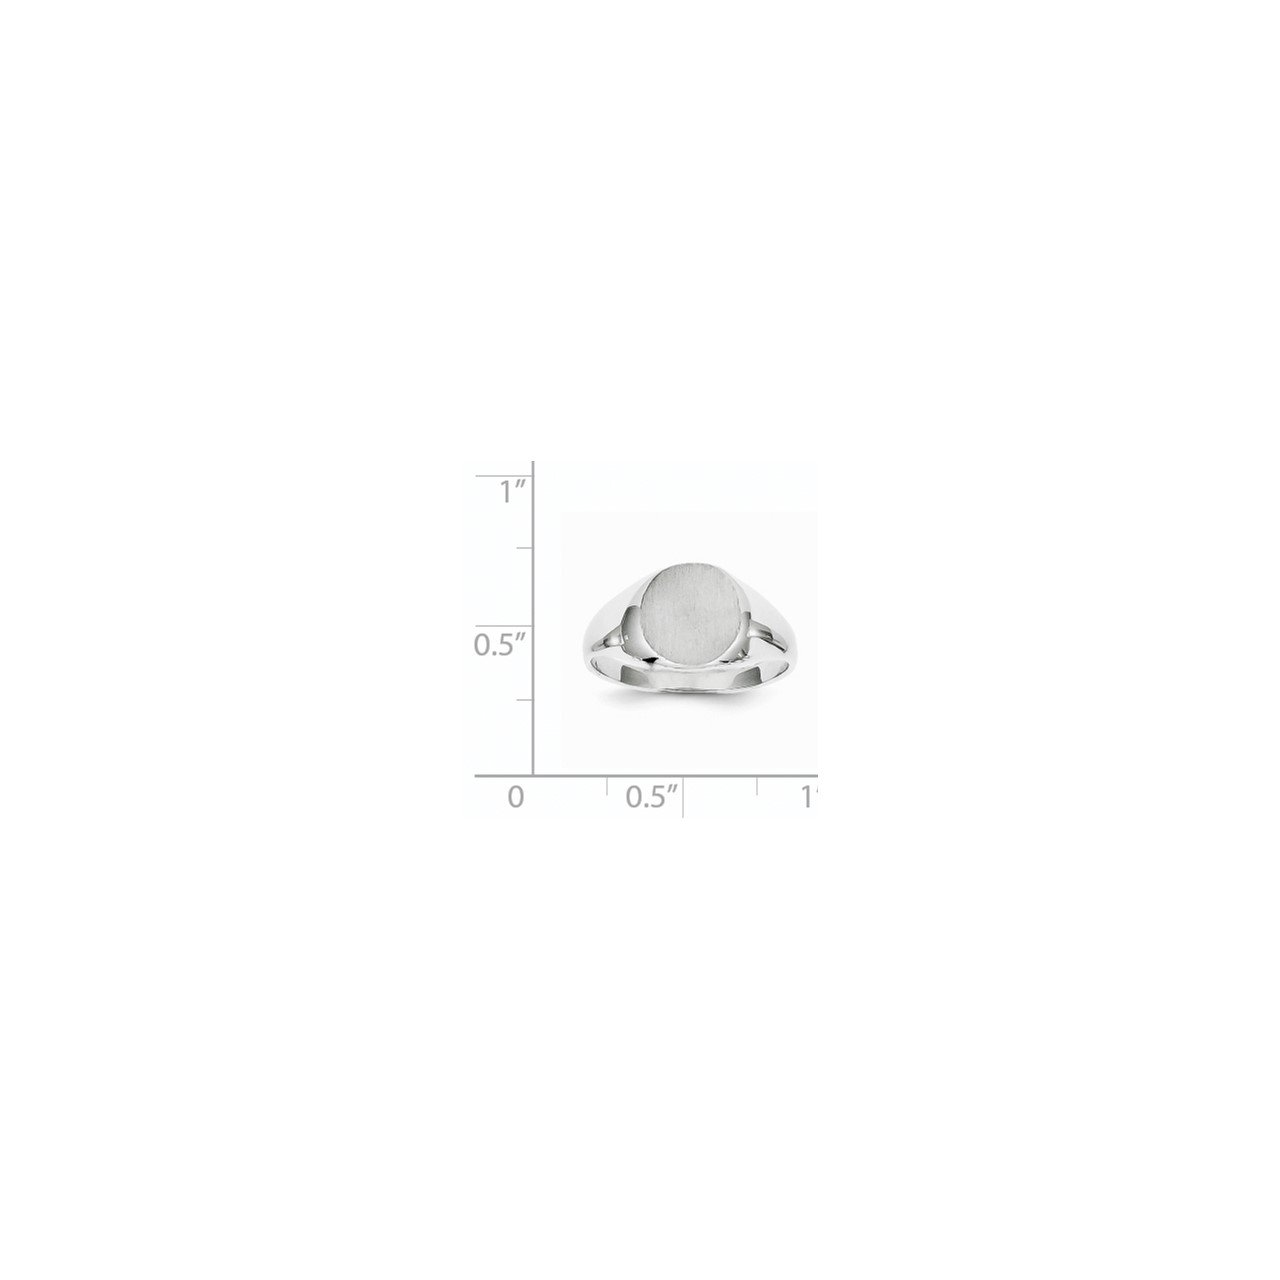 14kw 9.0x9.5mm Closed Back Signet Ring-4